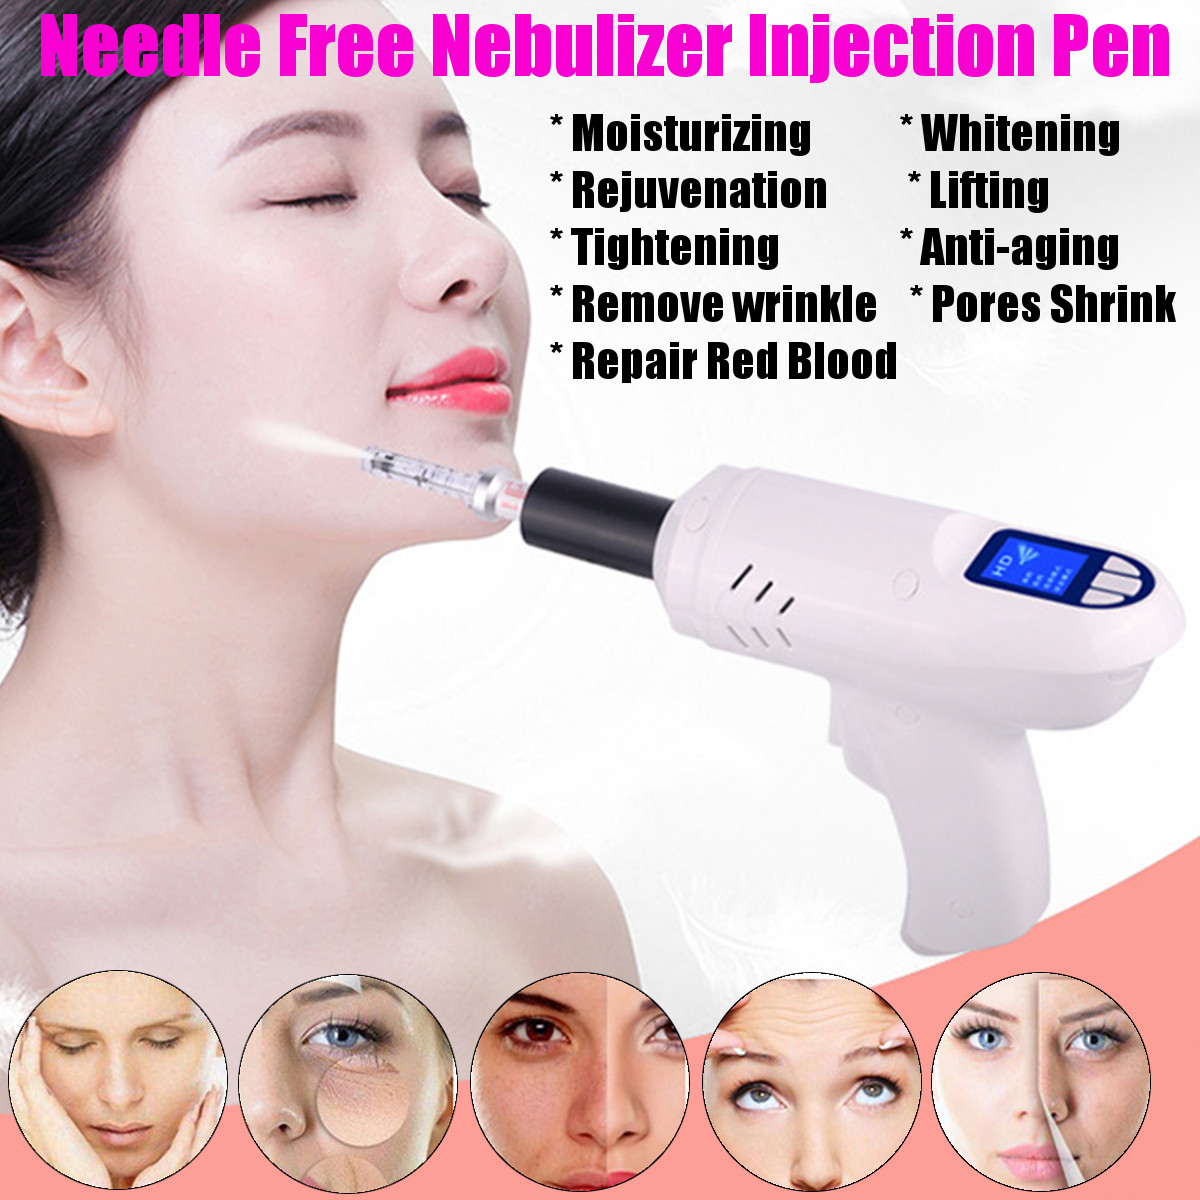 Electric Needle Free Nebulizer Injection Pen Wrinkle Removal Anti-aging Face Cleaner Skin Massager Hyaluronic Acid Micro Machine